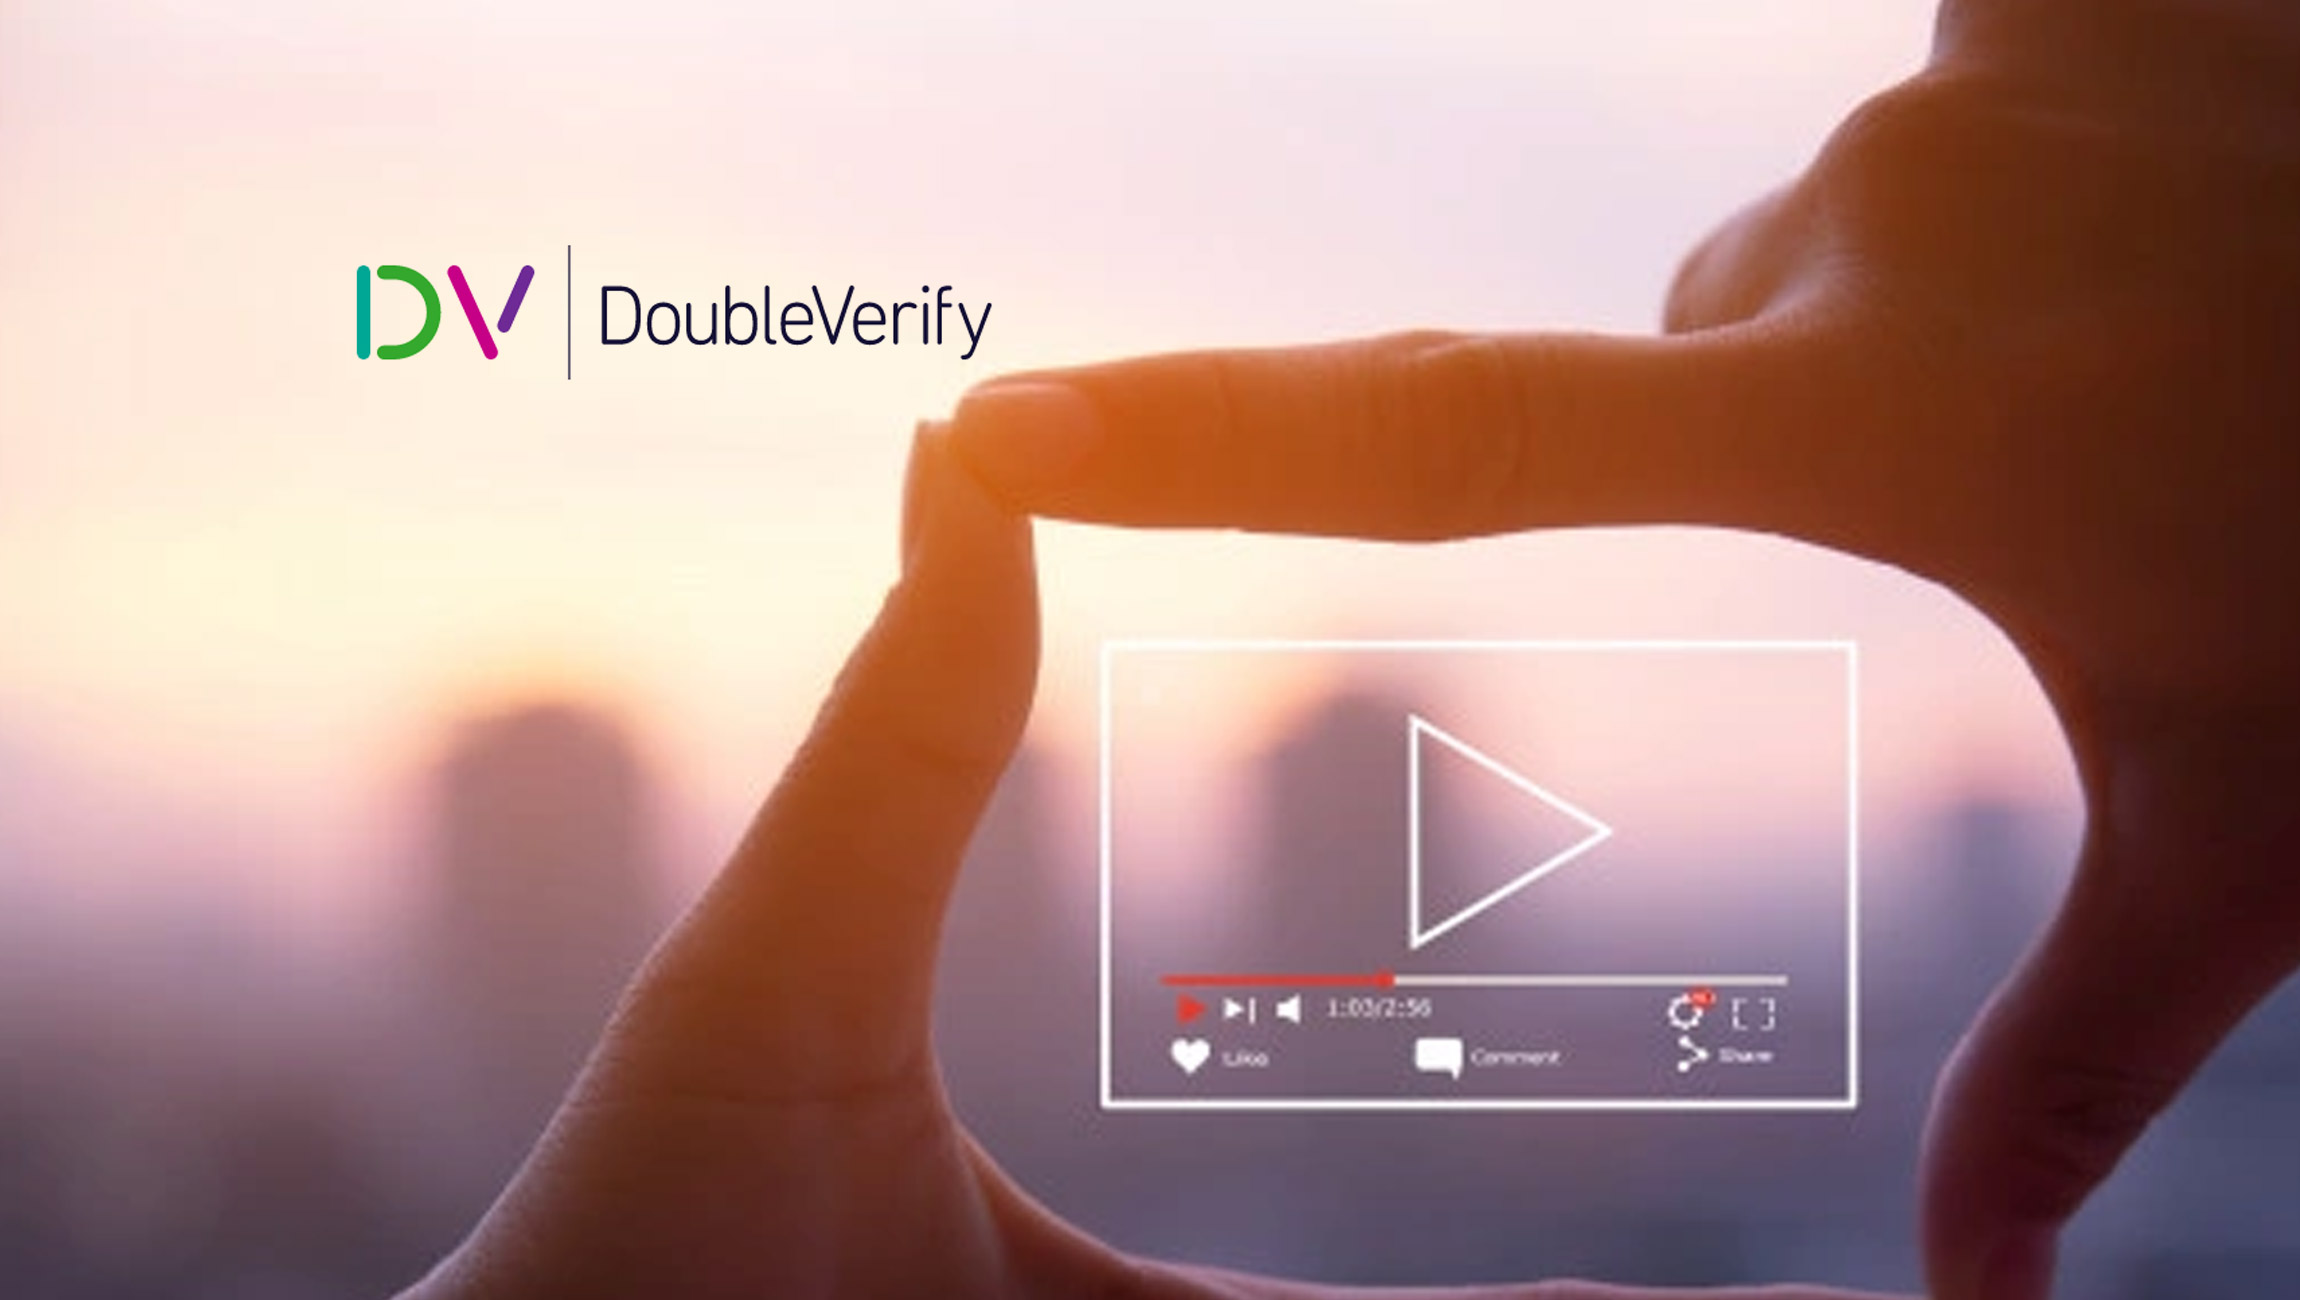 DoubleVerify Continues CTV Verification Leadership, Earning MRC Accreditation for CTV Fully On-Screen, Video Filtering & Additional New Solutions